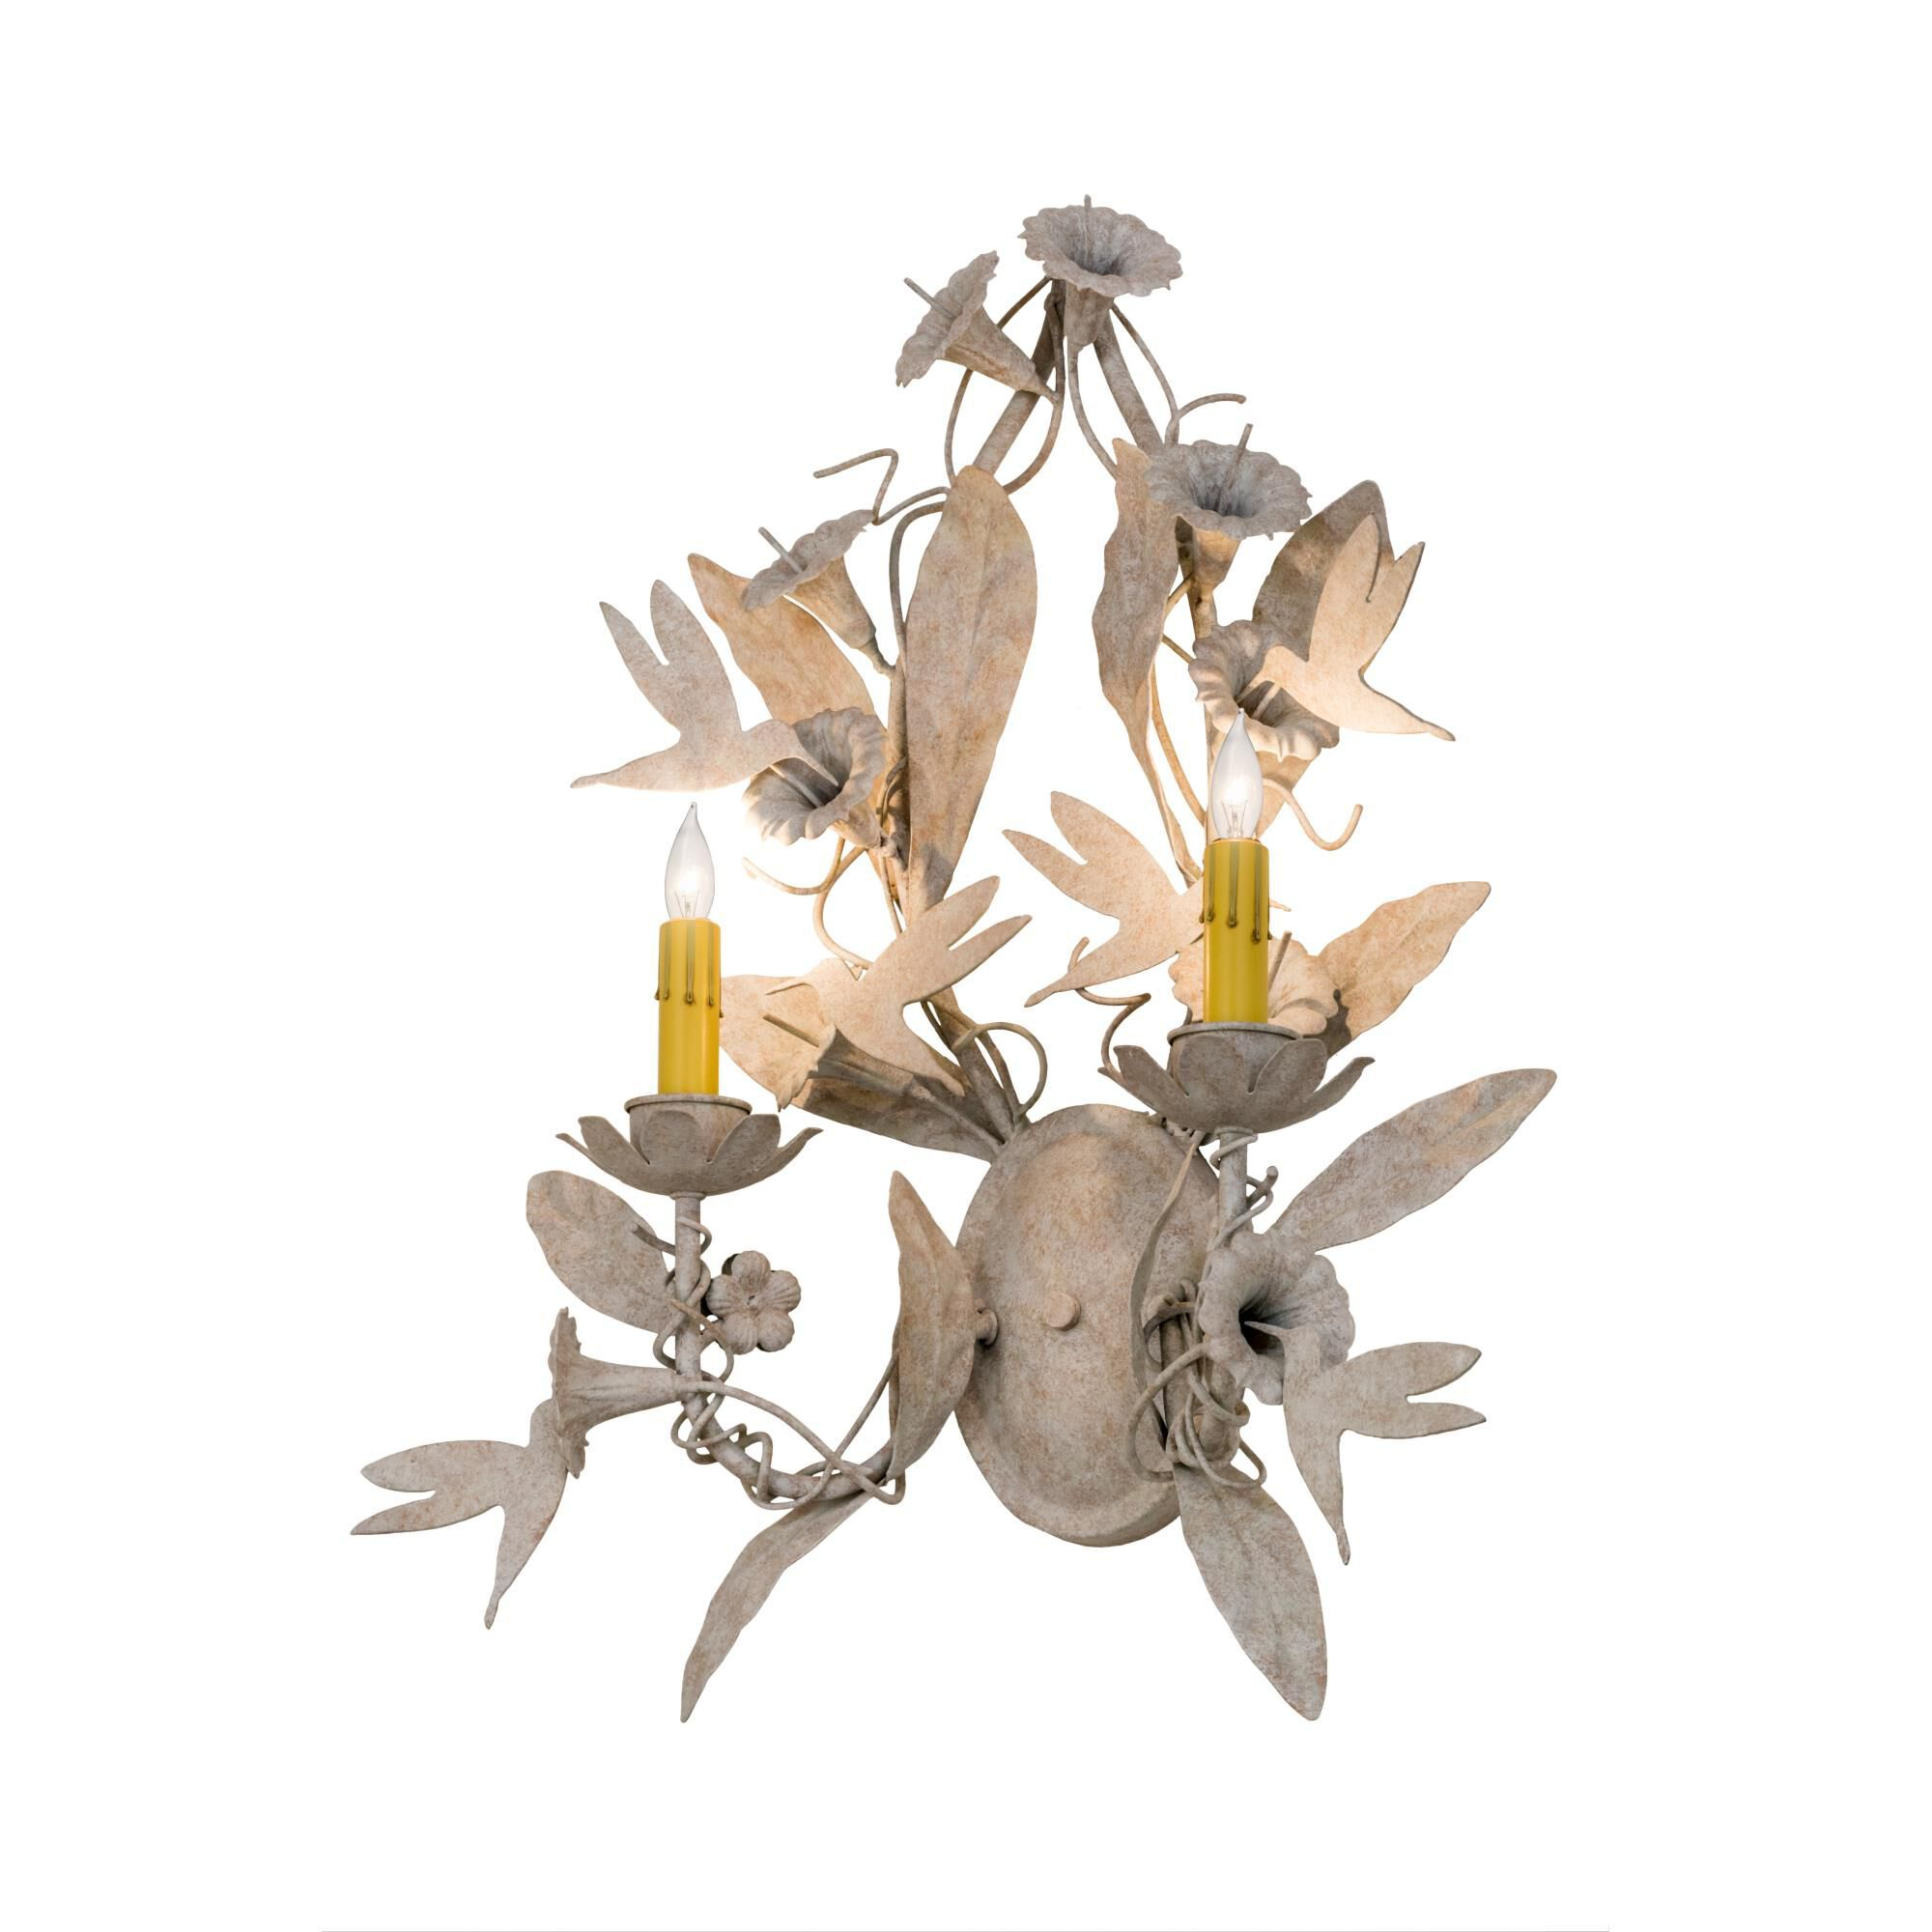 Le Printemps 24 Inch Wall Sconce by Meyda Lighting Le Printemps Wall Sconce by Meyda Lighting - 167975